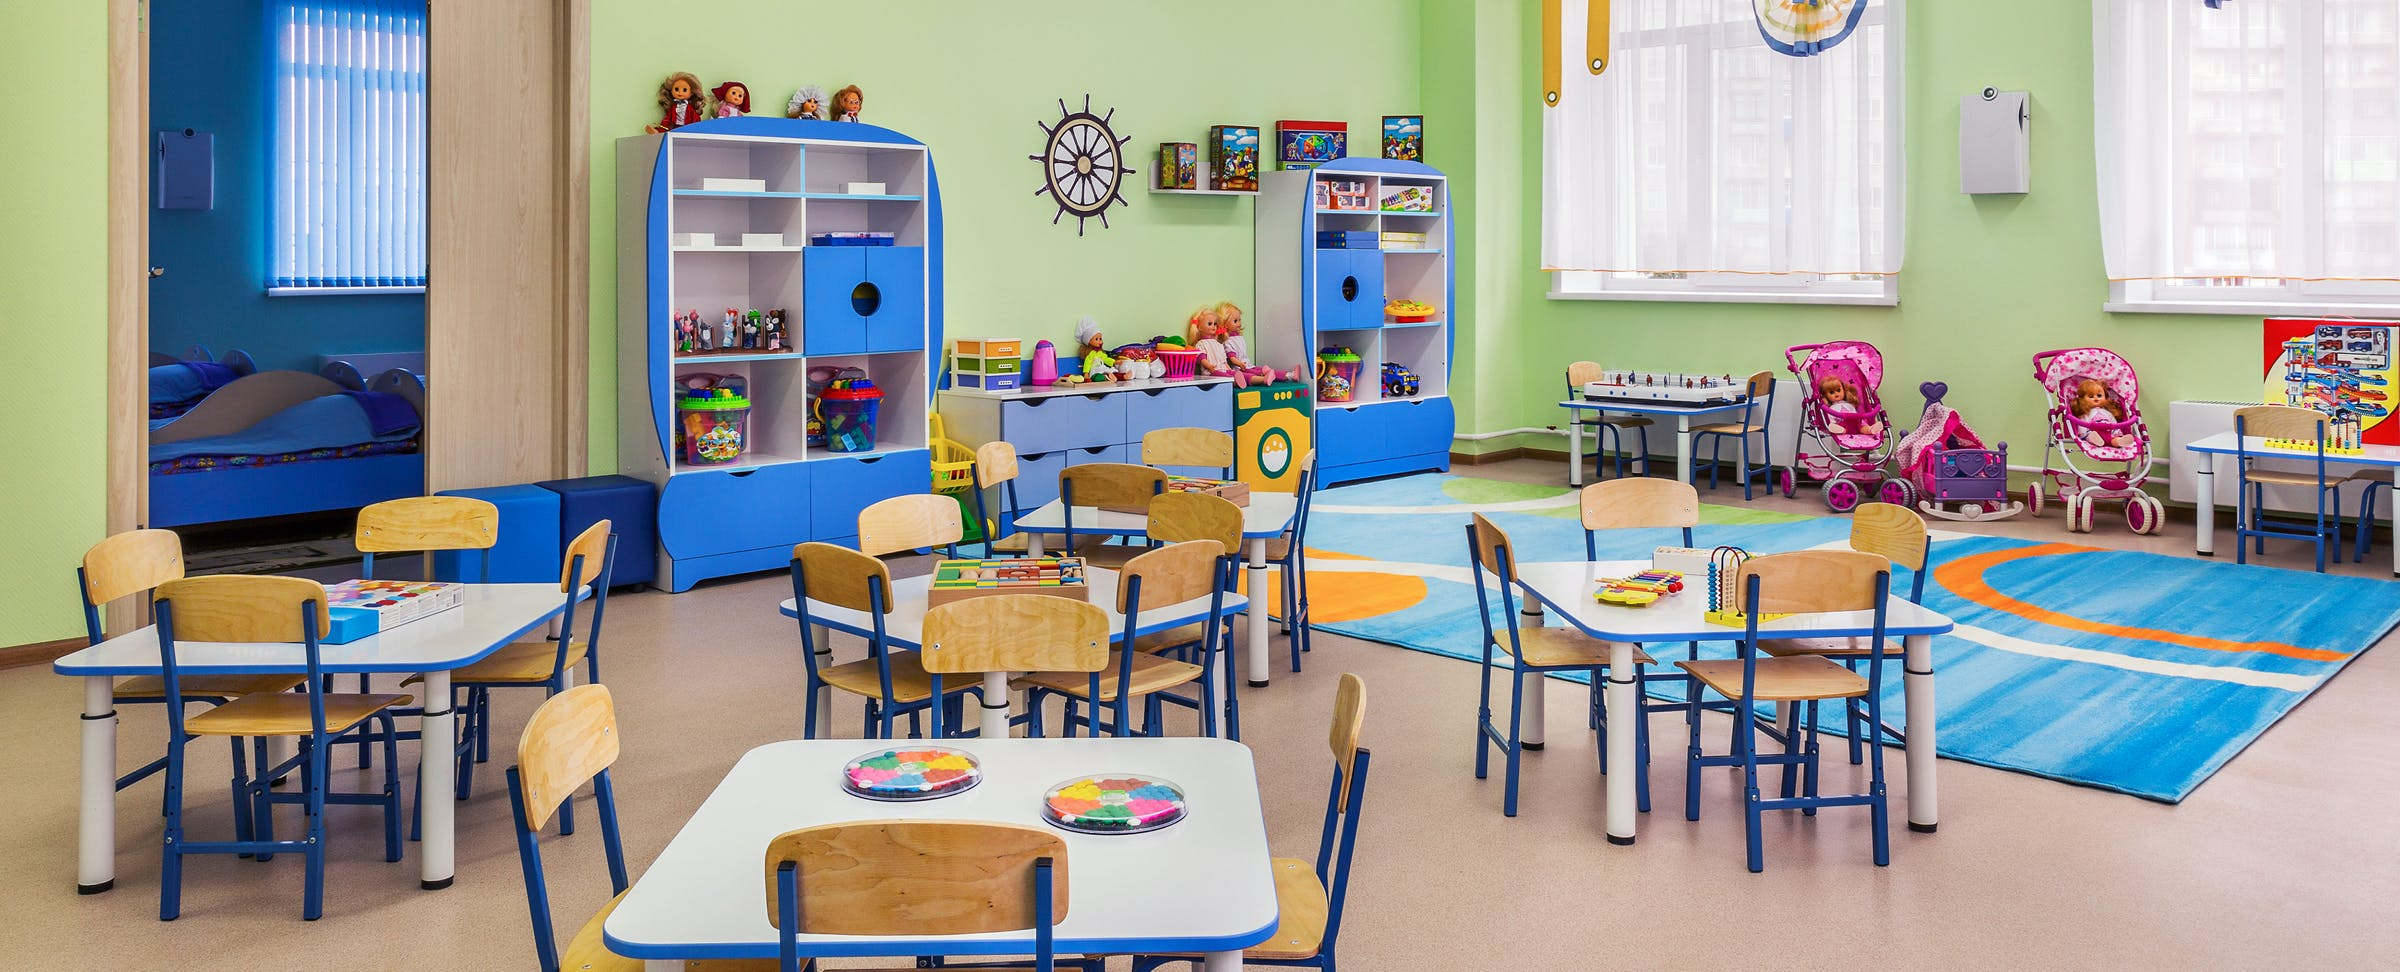 Todays Classrooms Should Be About Flexible Teaching Not Furniture